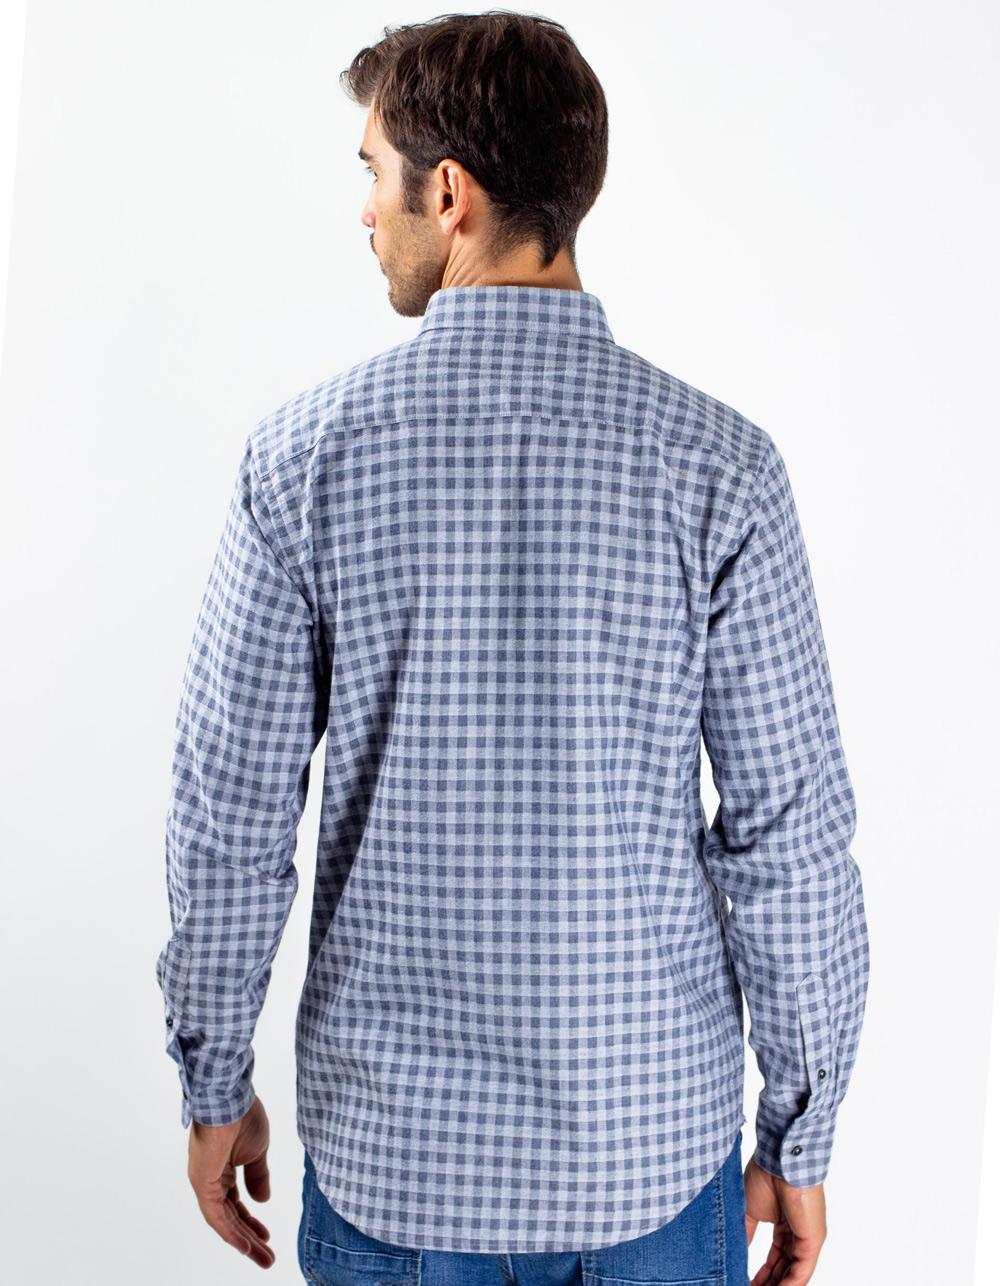 Camisa de cuadros gris - Backside